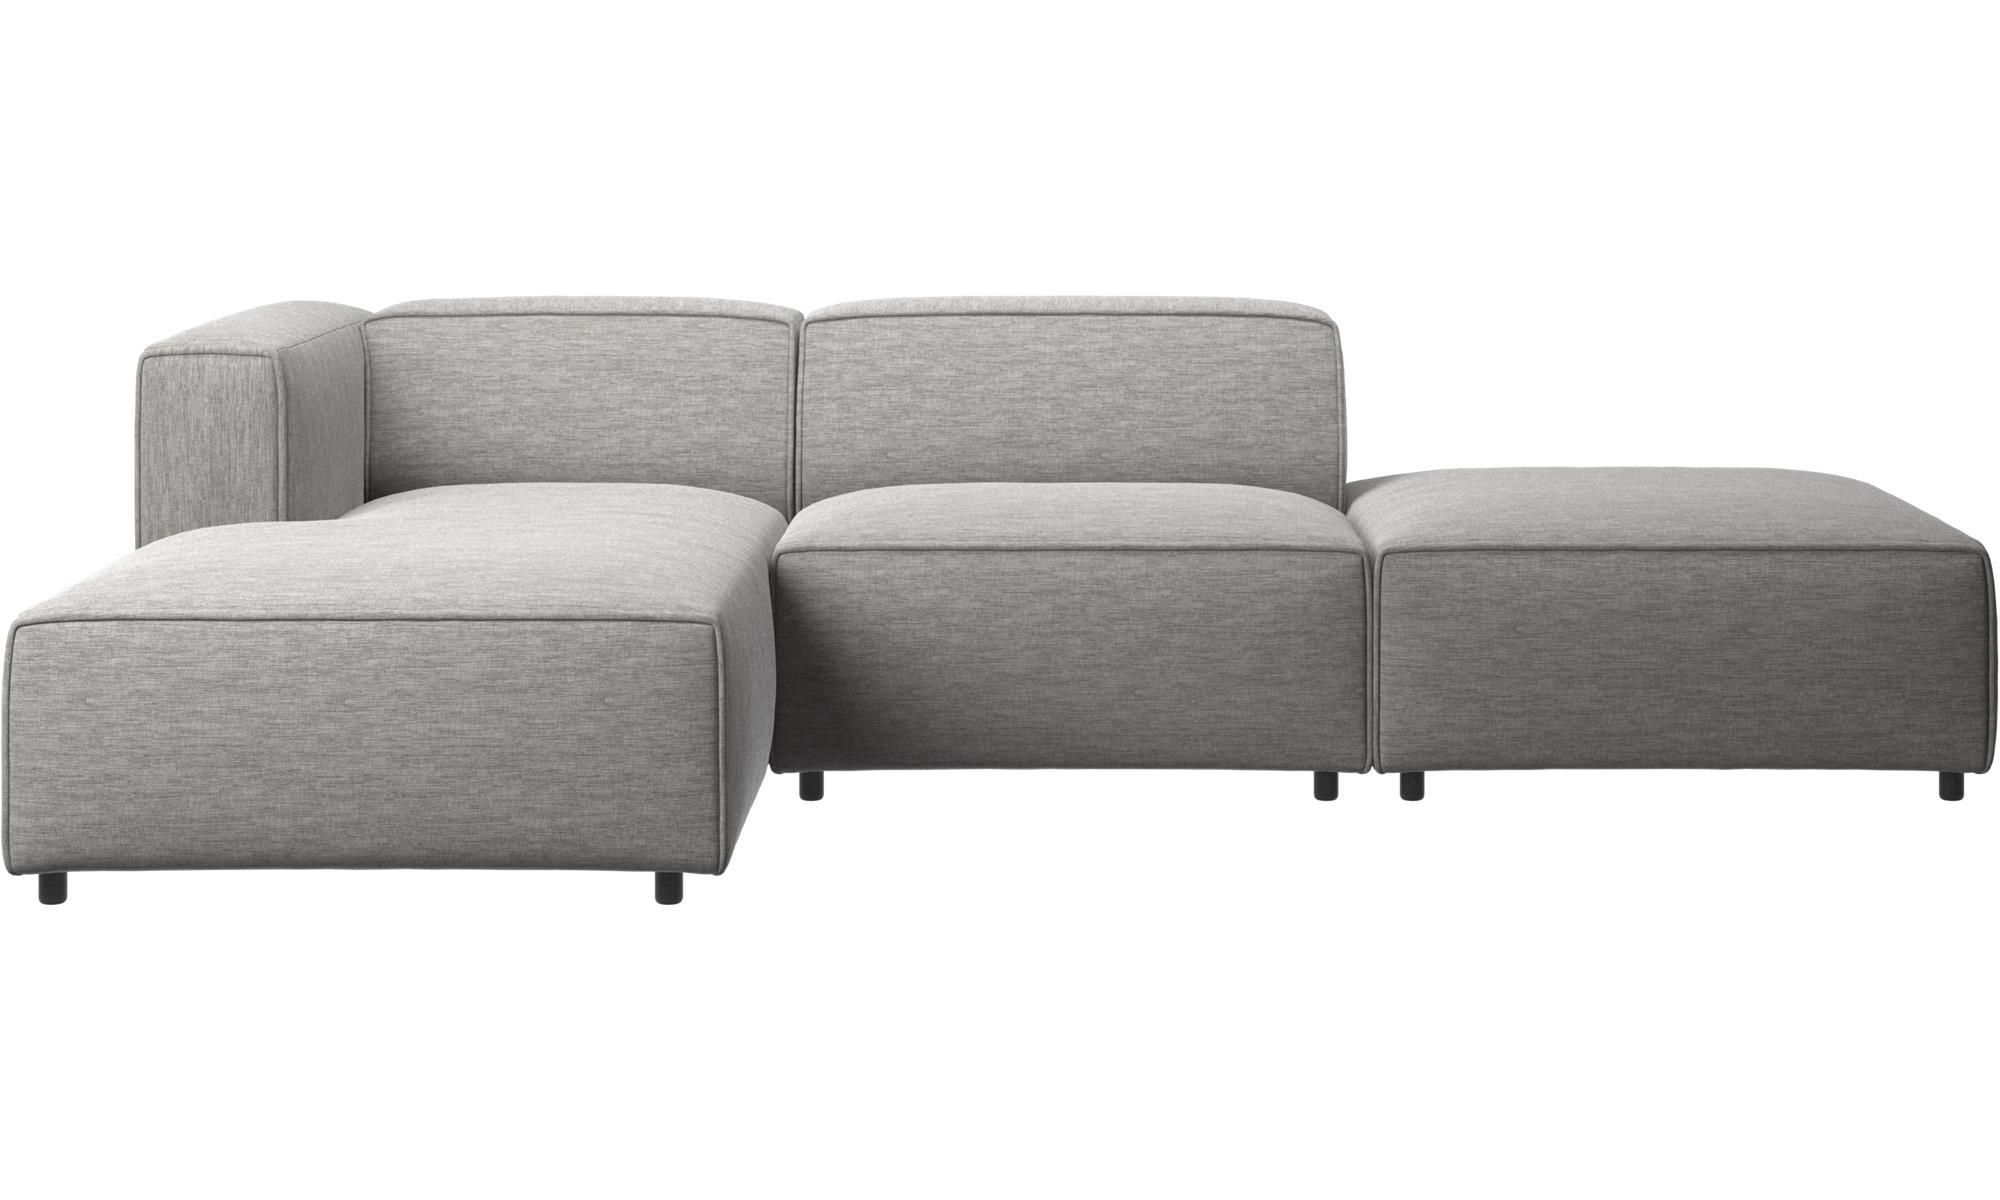 Chaise lounge sofas - Carmo sofa with lounging and resting unit ...